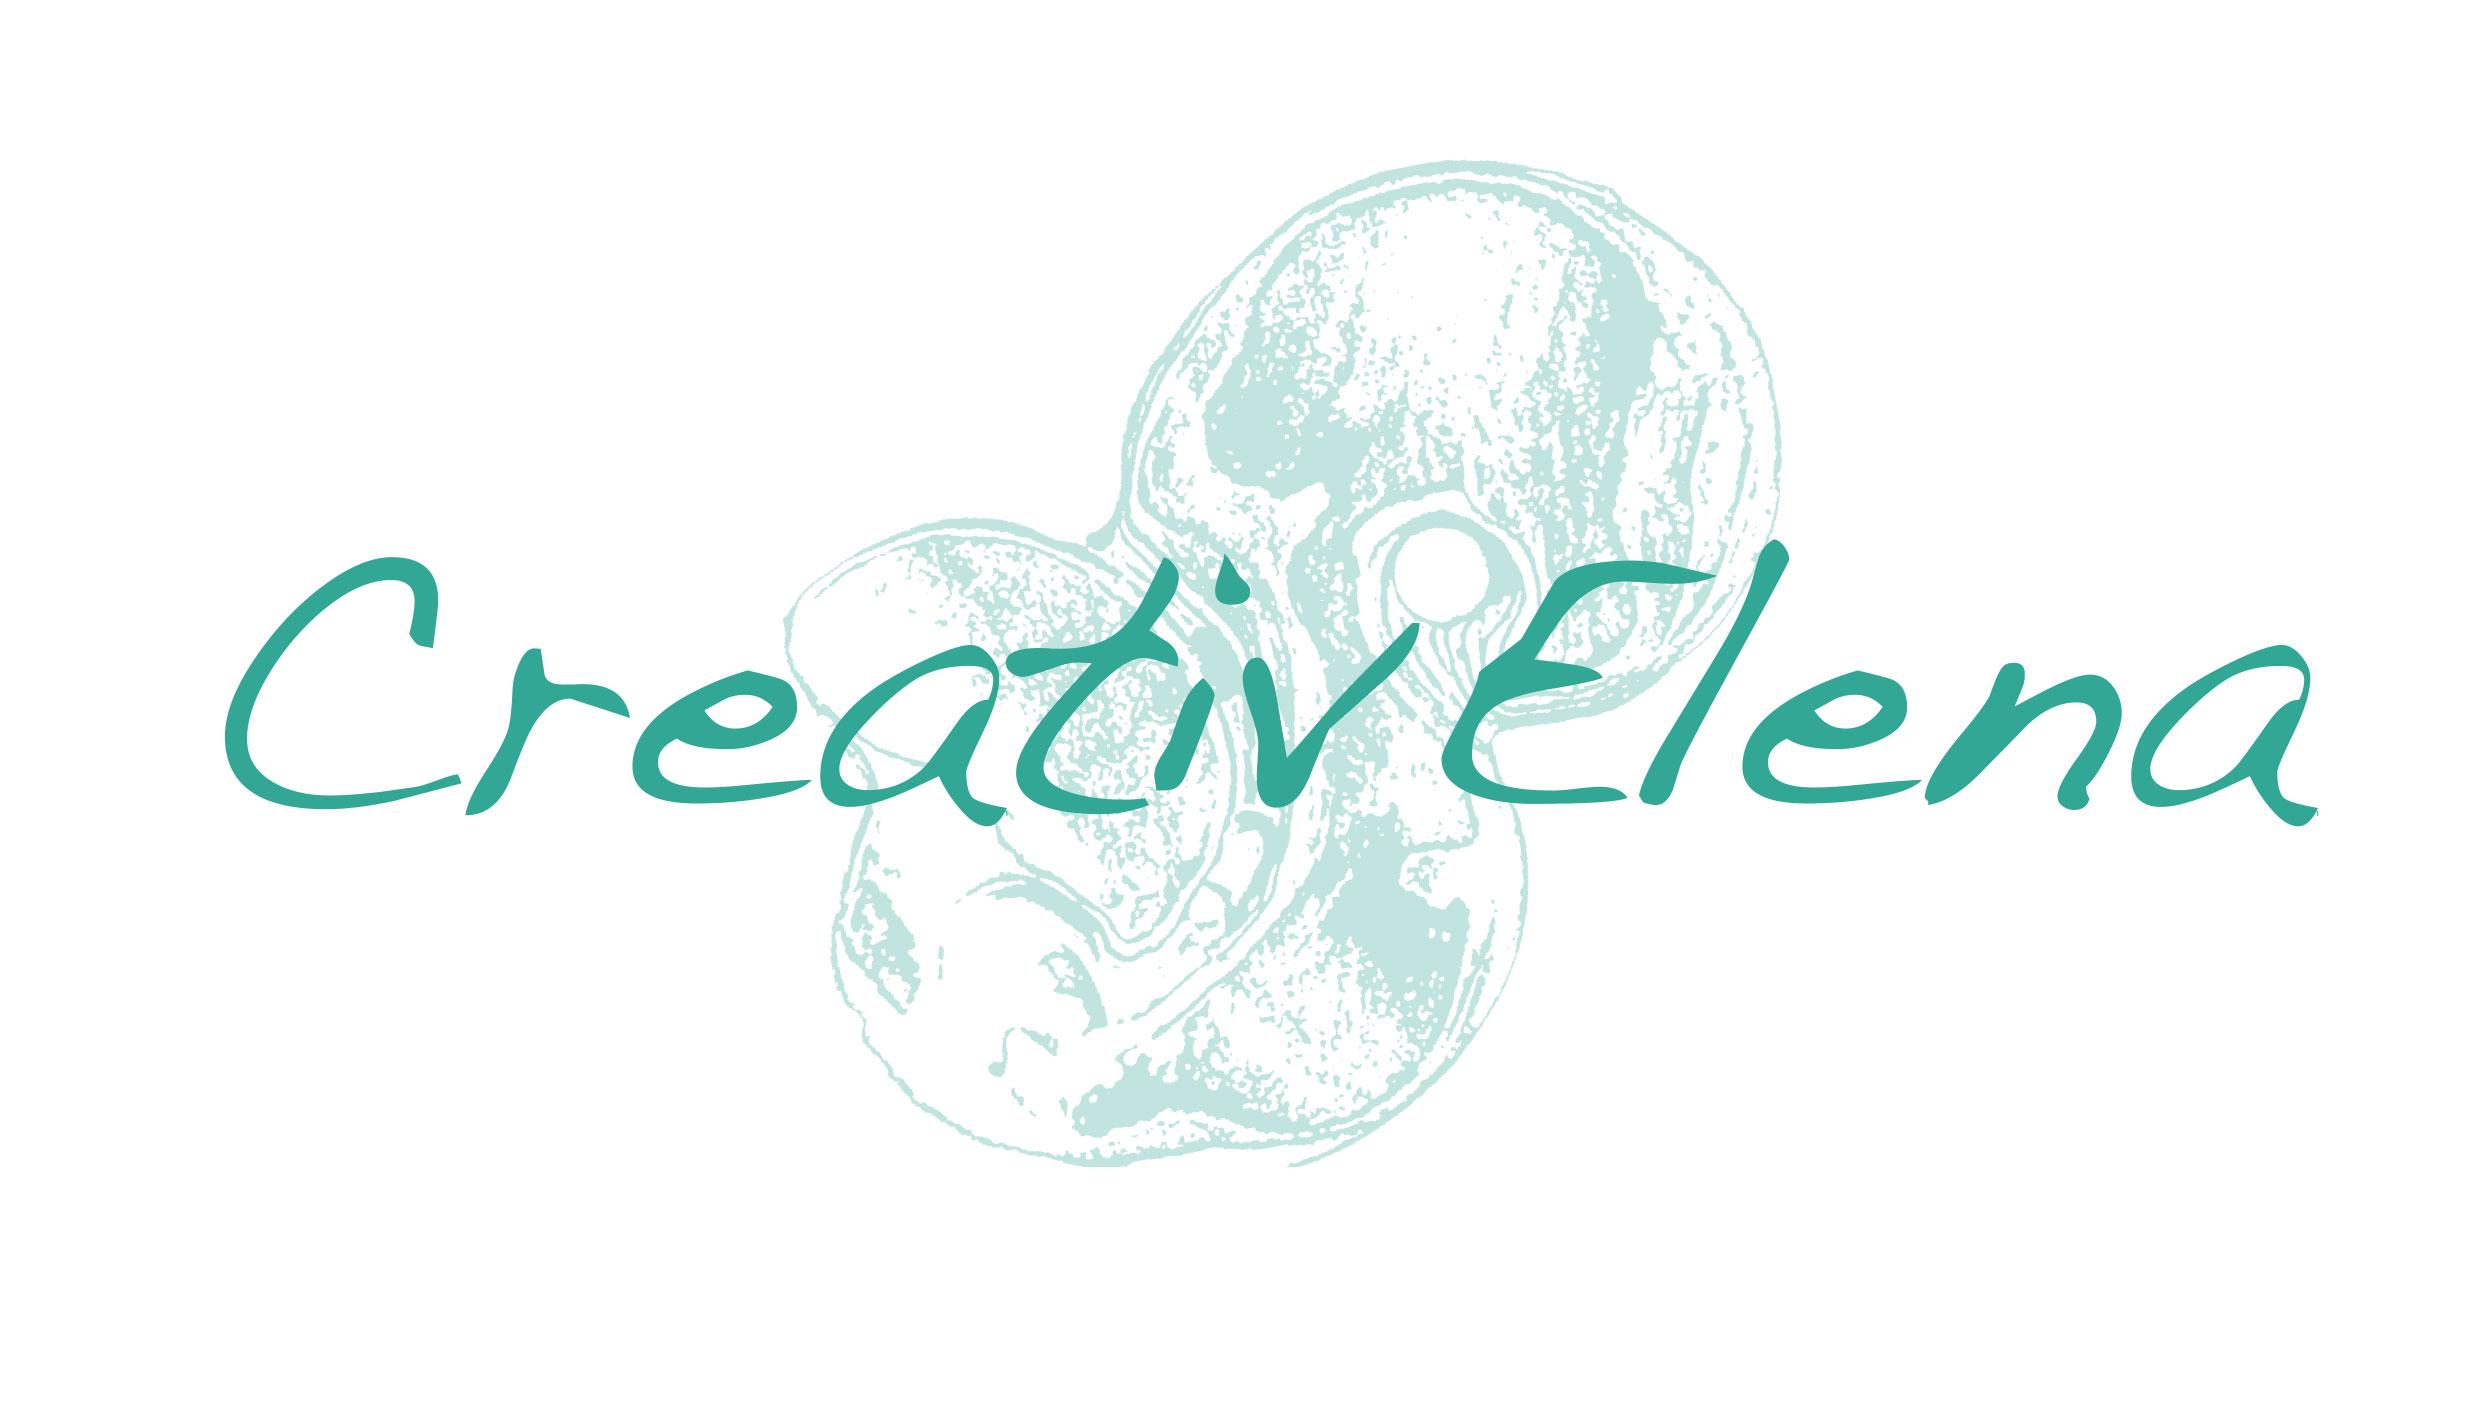 Creativelena | Travel Blog & PR | Elena Paschinger